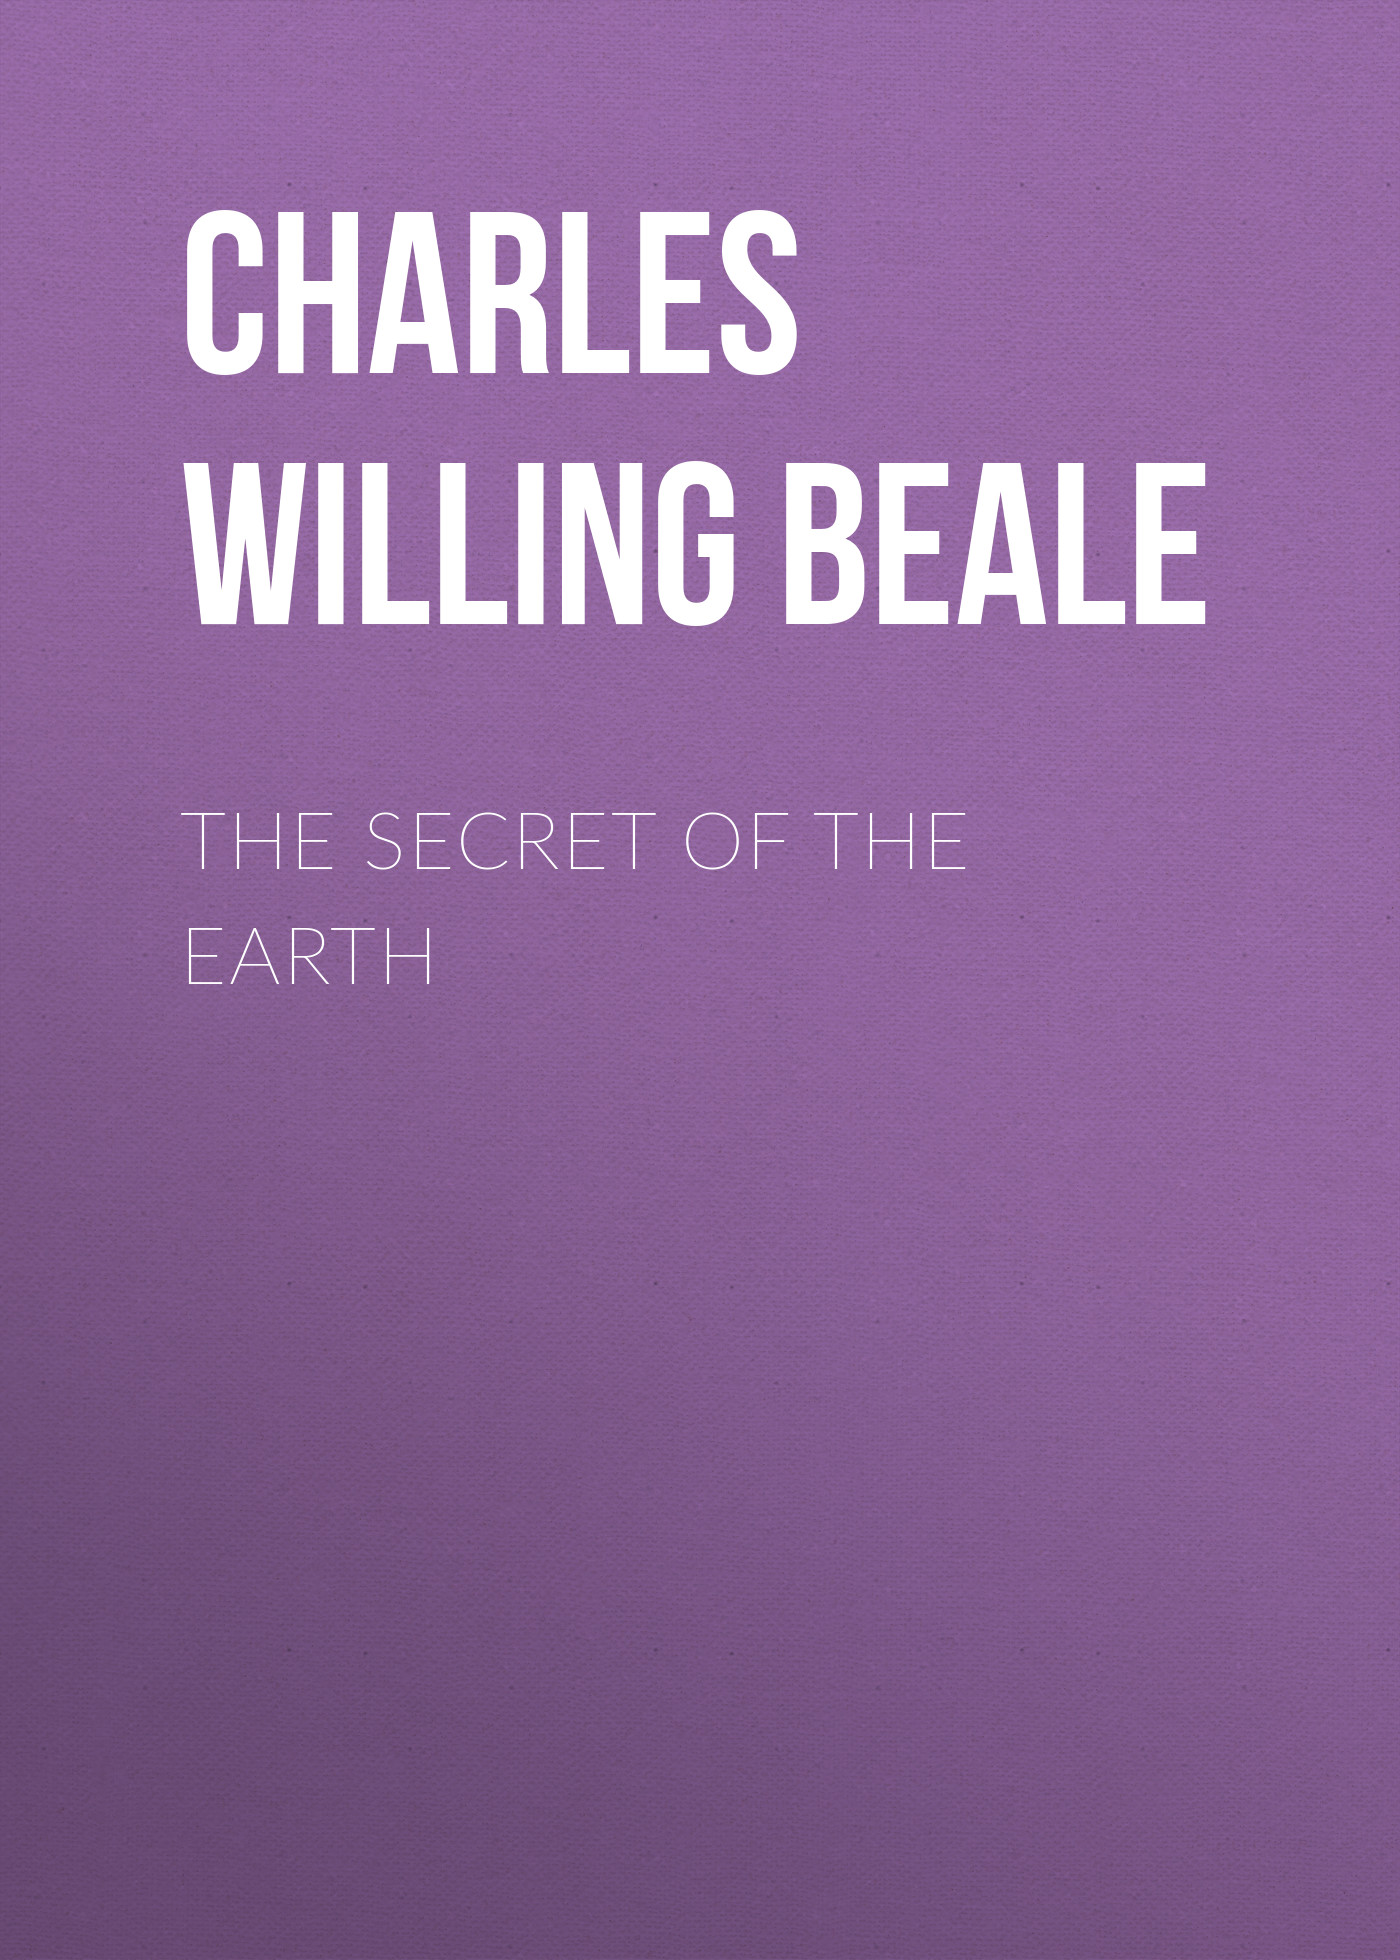 Charles Willing Beale The Secret of the Earth hardy boys 07 the secret of the caves